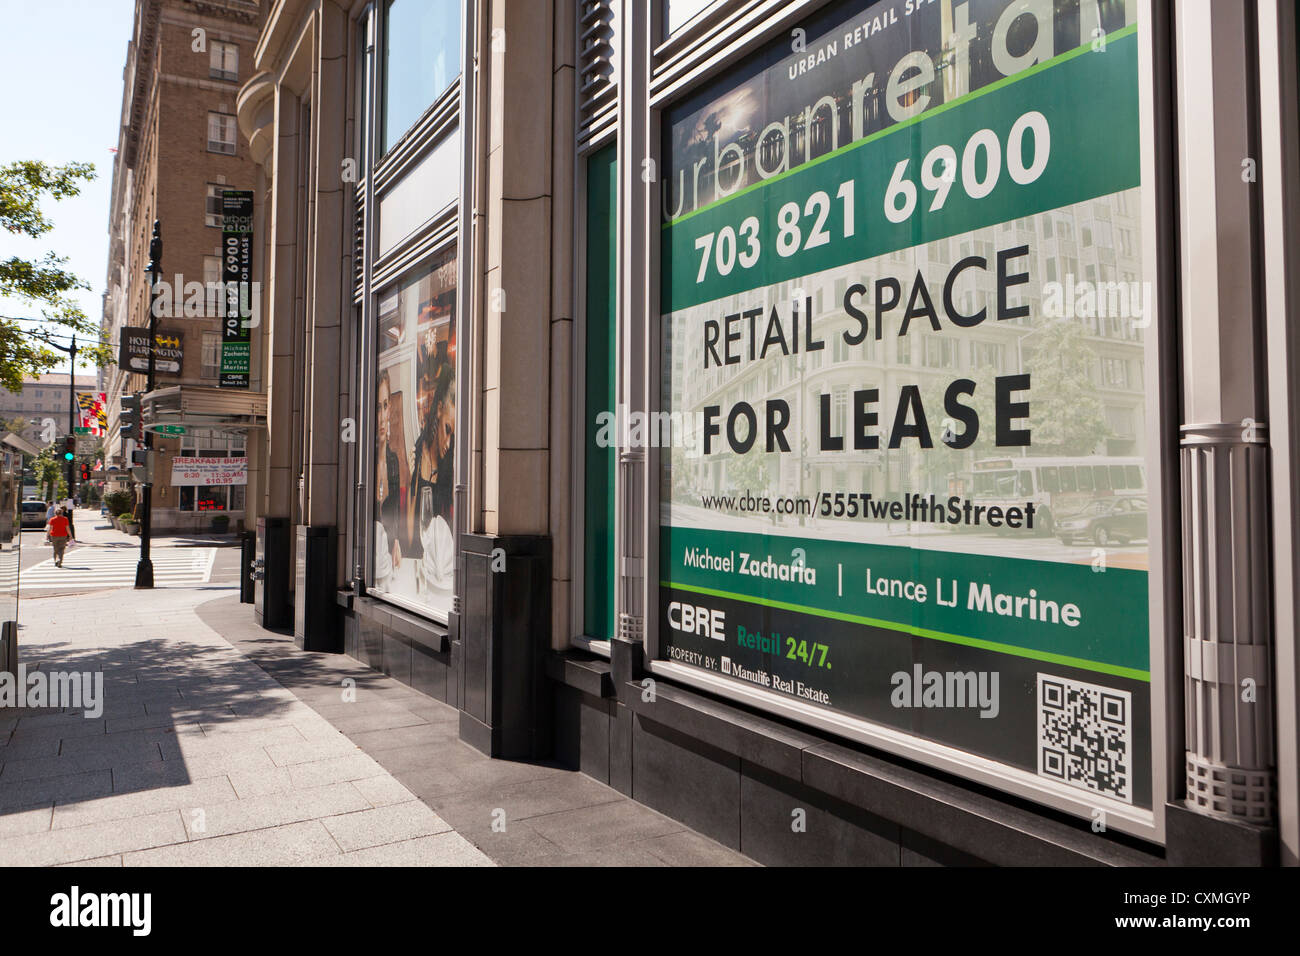 Retail Space for Lease sign - Stock Image